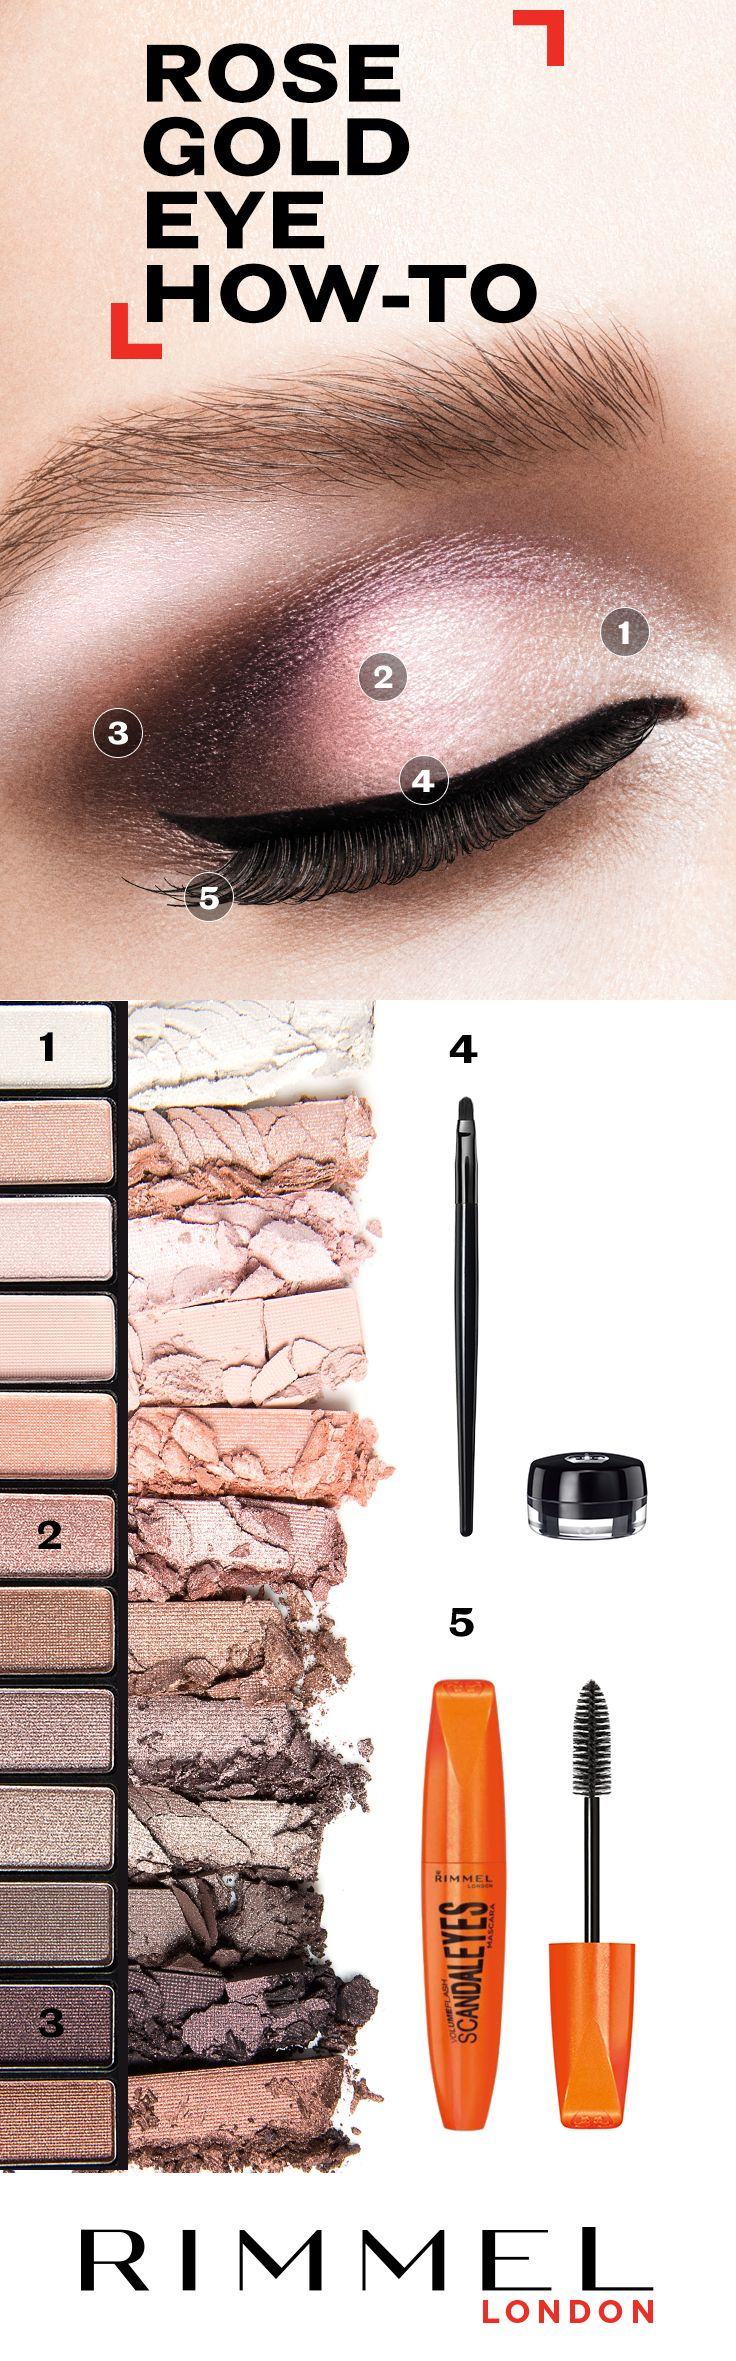 For a gorgeous eyeshadow idea, follow this step by step guide using Rimmel London Magnif'Eyes Shadow Palette 002 for a rose gold eye, then top with ScandalEyes Gel Eyeliner and ScandalEyes Mascara to complete the look.